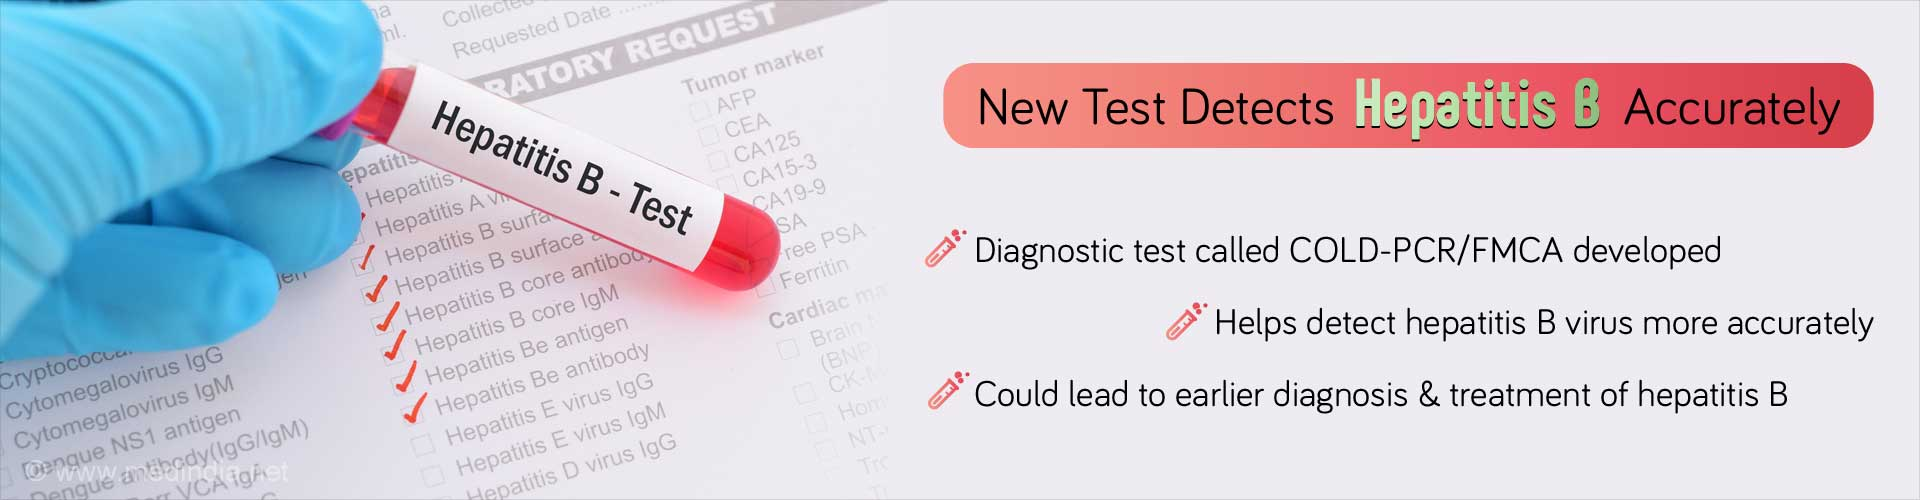 Hepatitis B can Now be Accurately Diagnosed with New Test: Here's How